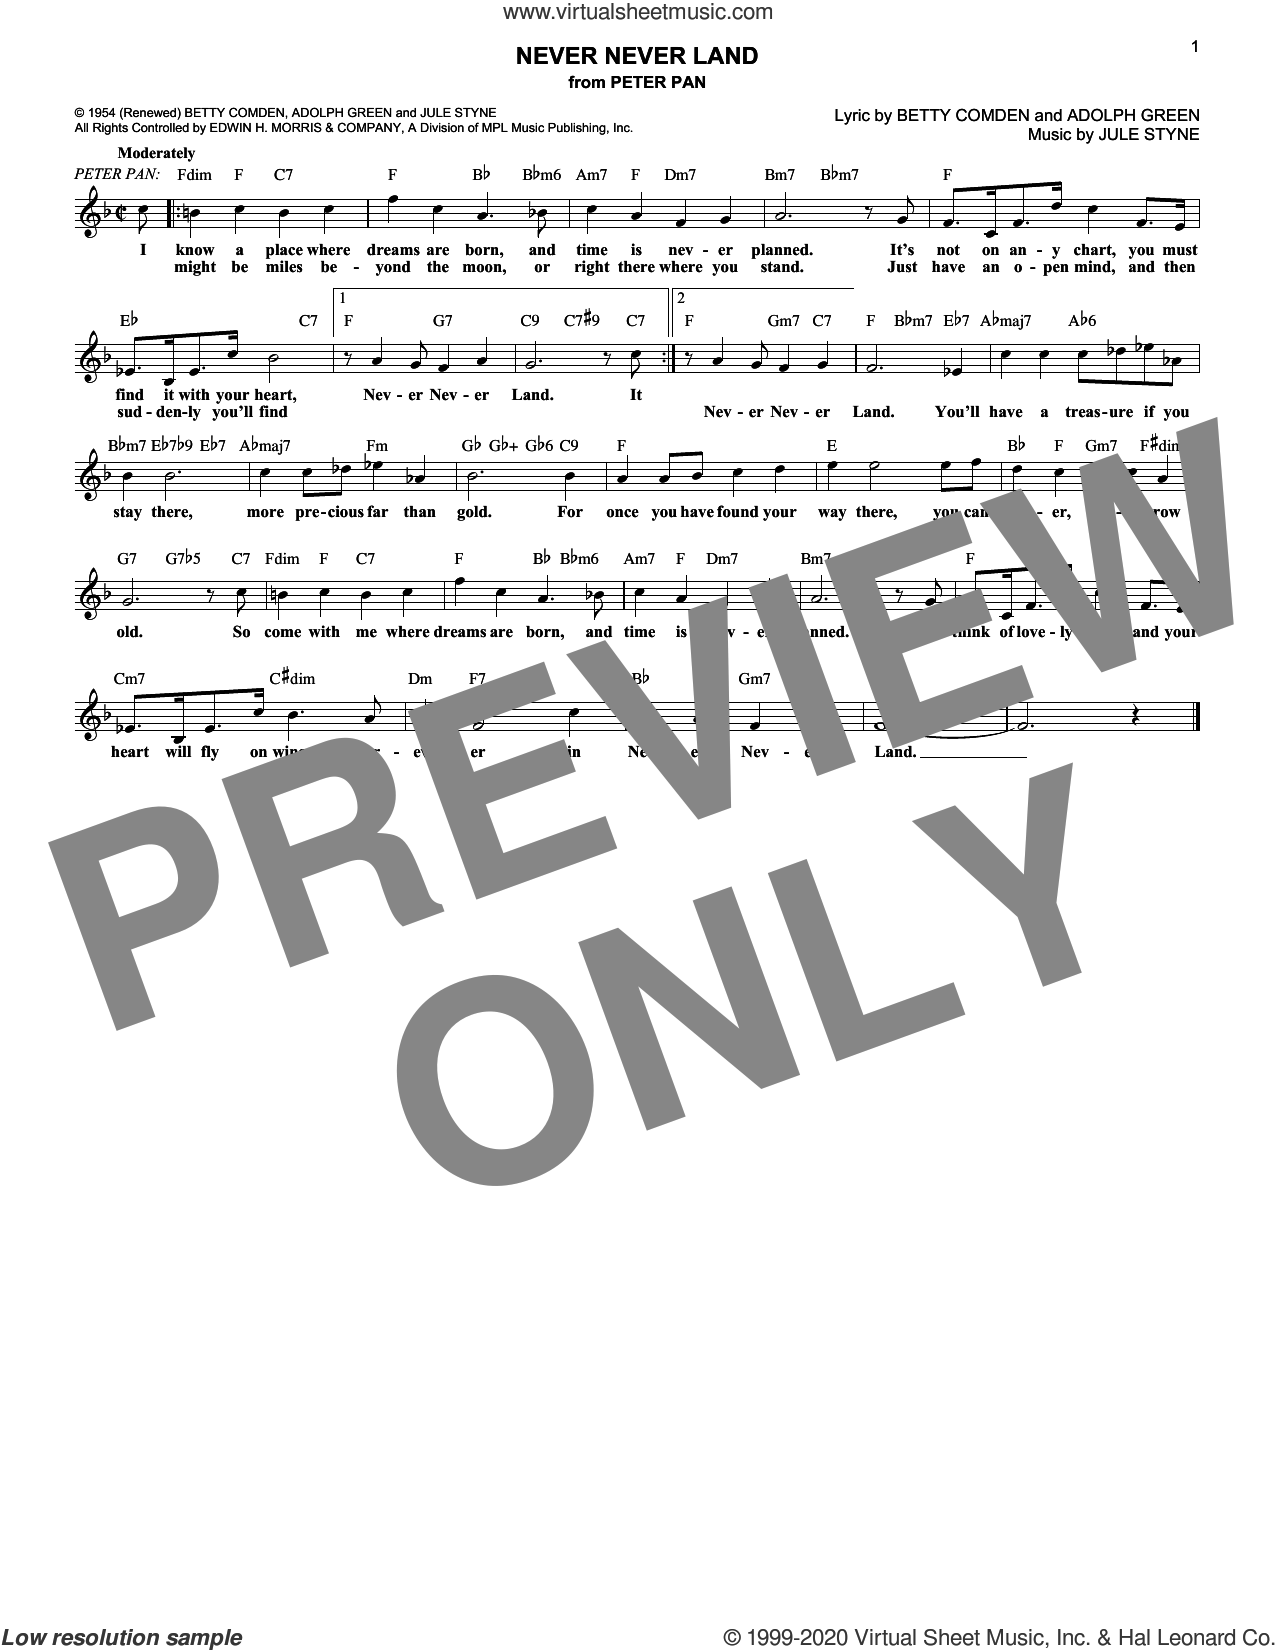 Never Never Land (from Peter Pan) sheet music for voice and other instruments (fake book) by Adolph Green, Betty Comden and Jule Styne, intermediate skill level